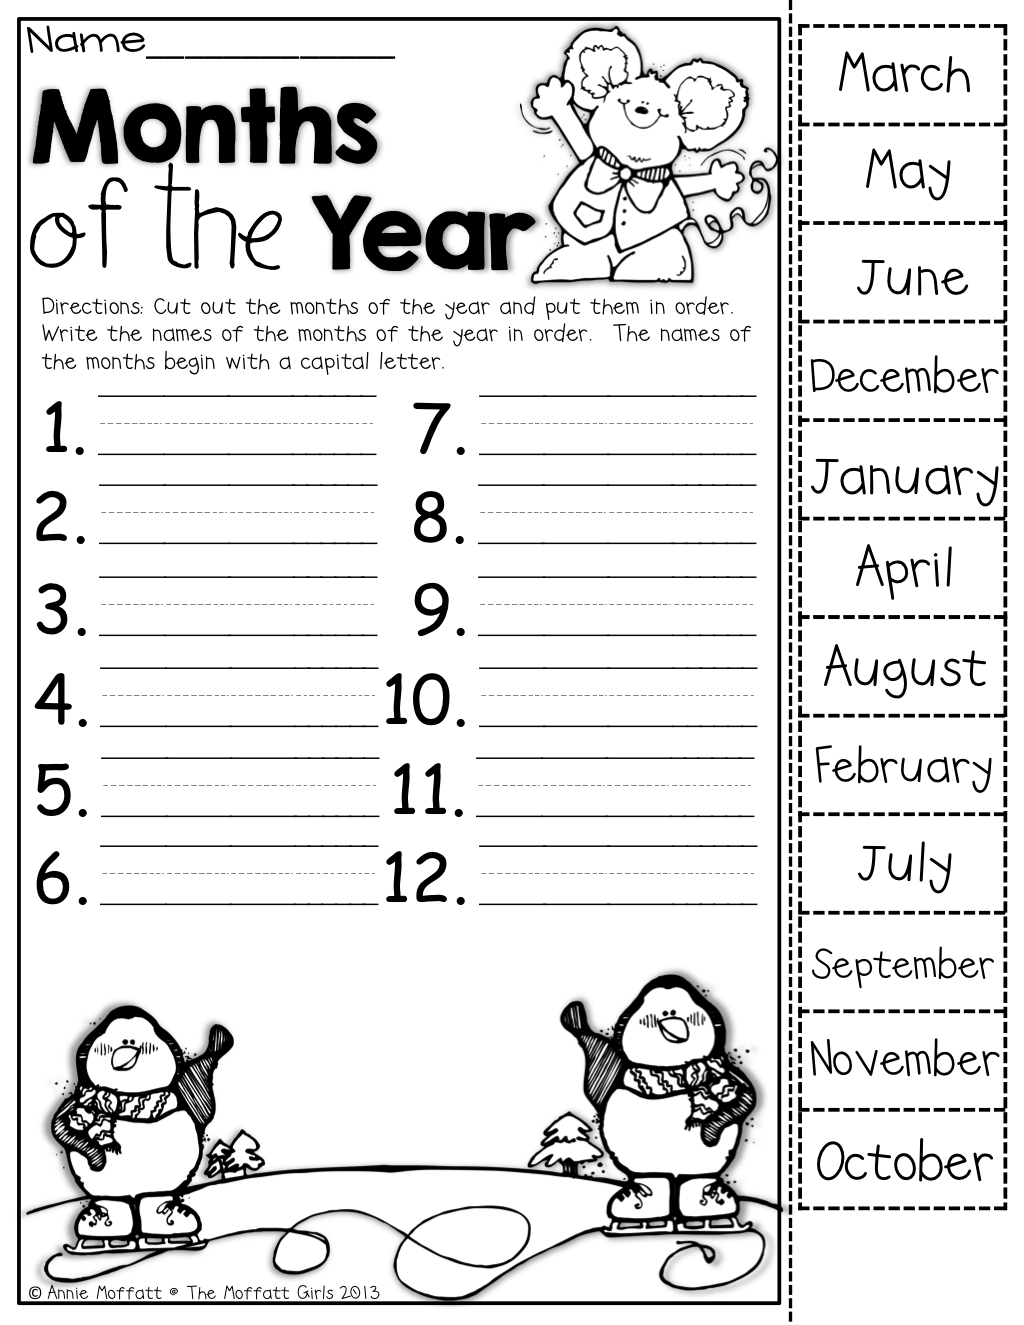 Months of the year (cut out the months, put them in order